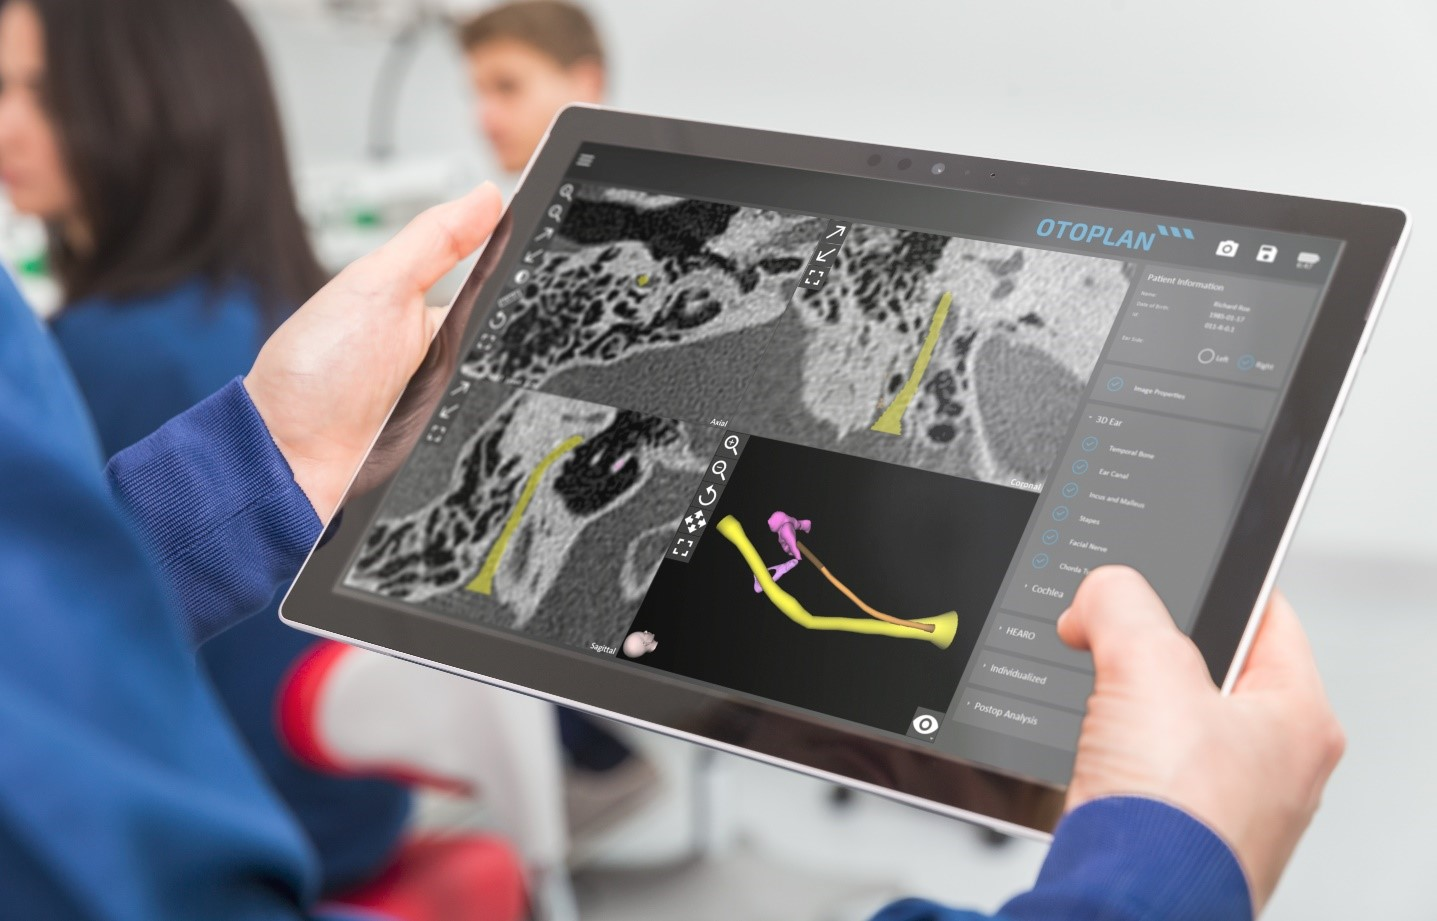 Surgical planning with OTOPLAN